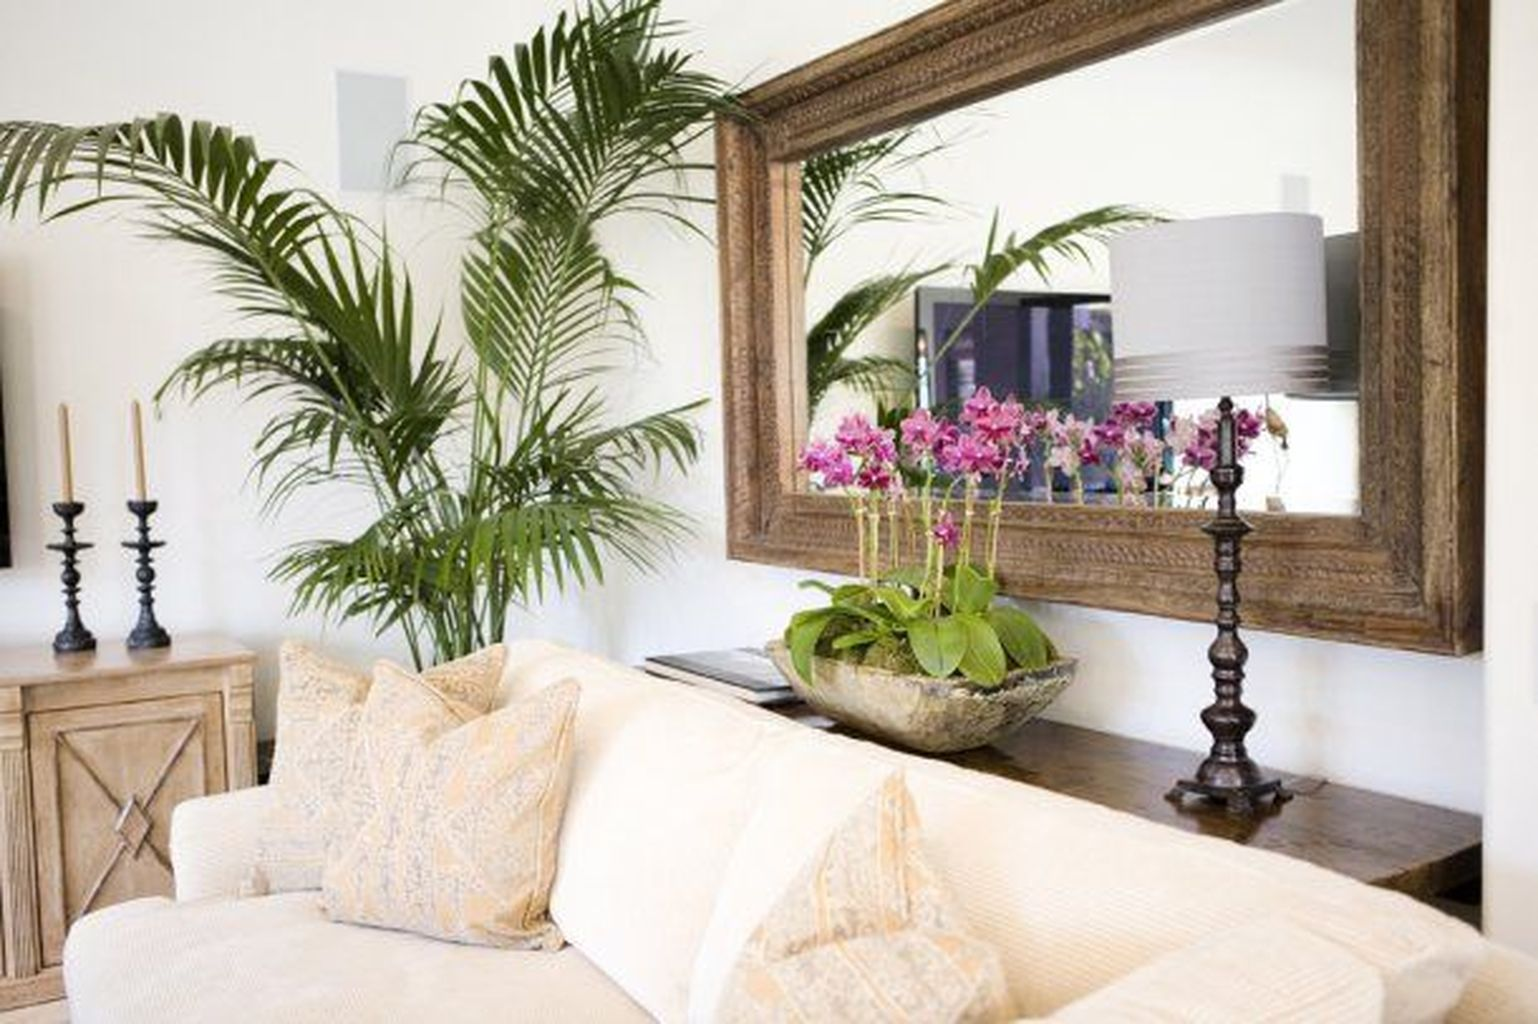 30+ Decorating Ideas For Blank Wall Behind Couch - Wall ...